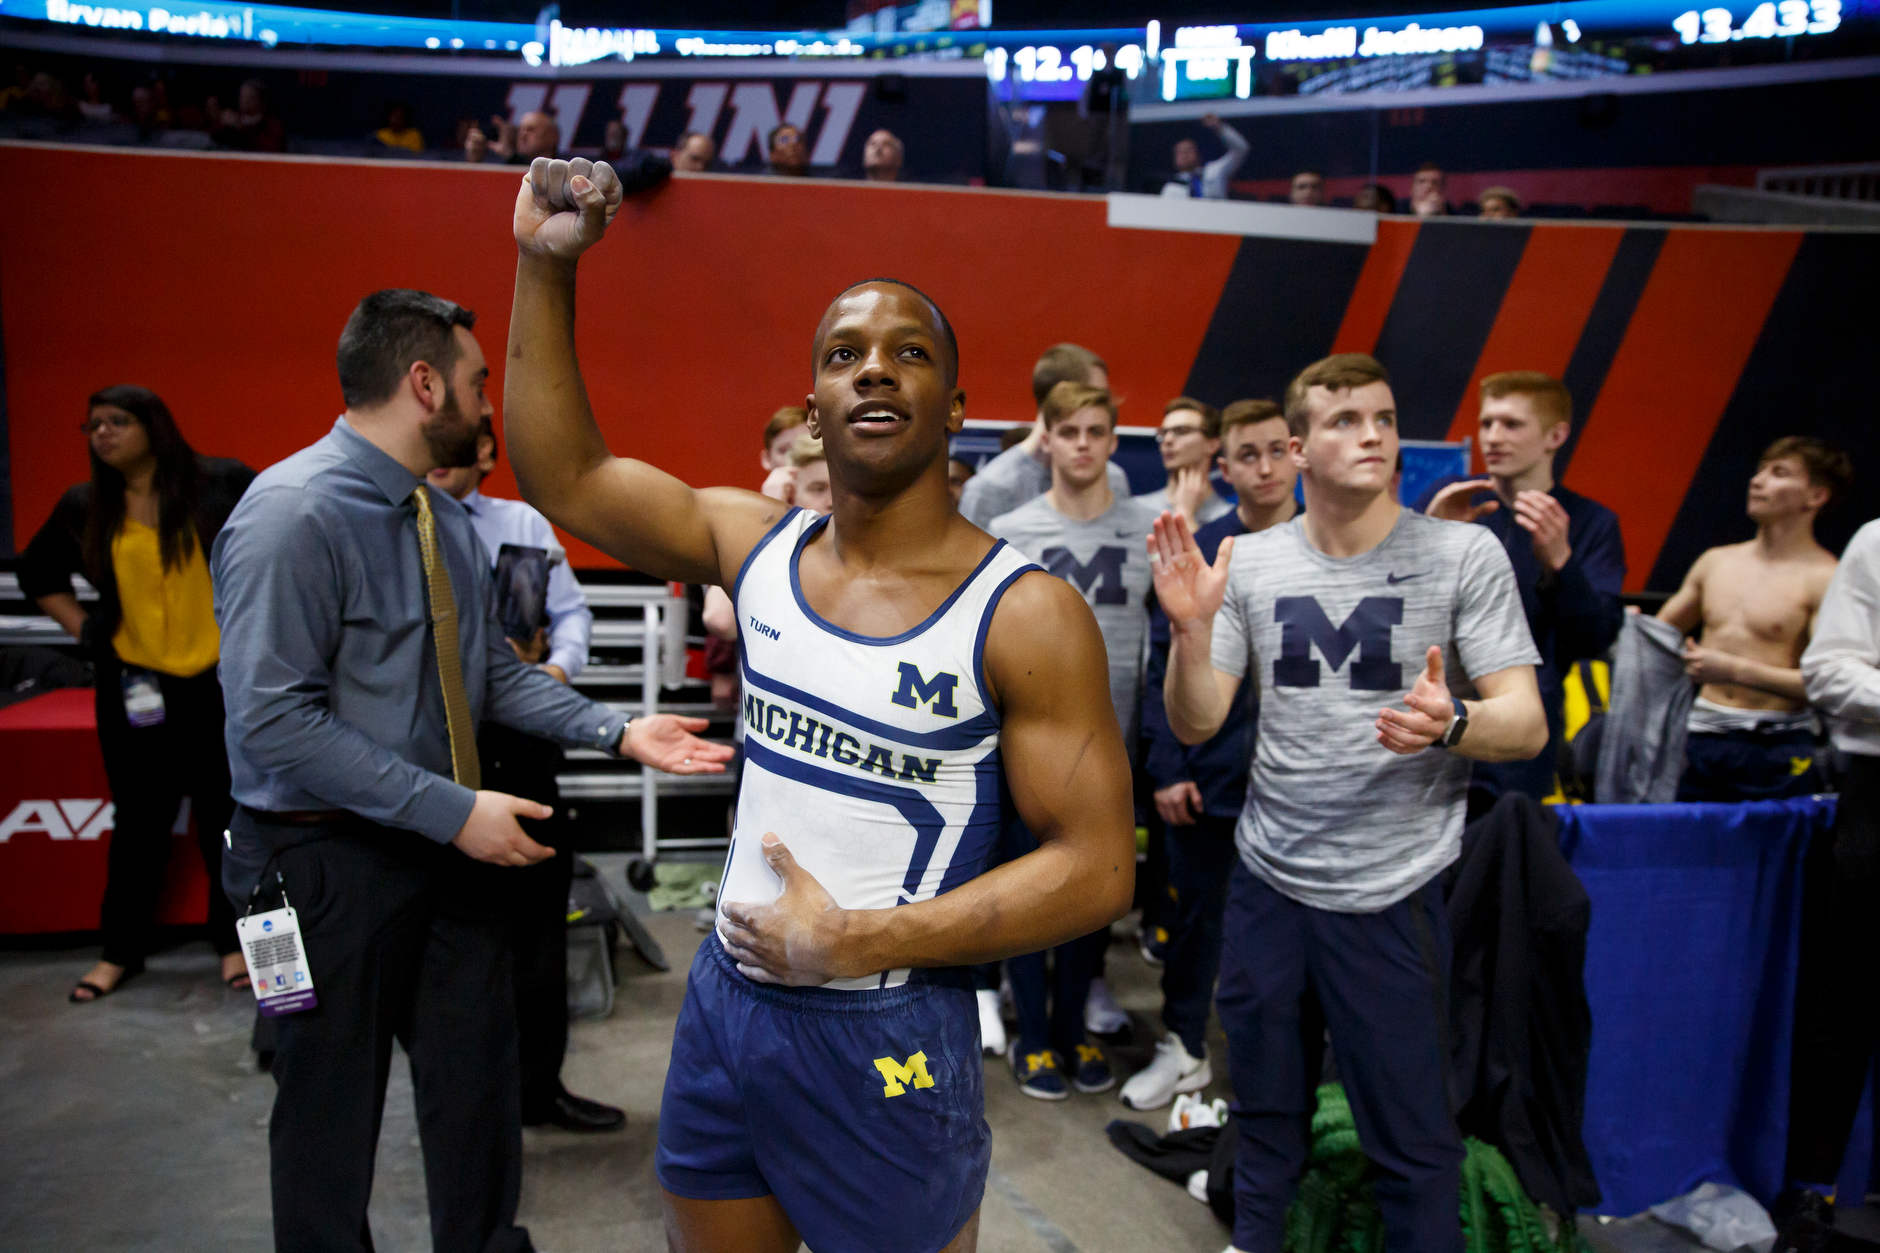 Michigan's Emyre Cole reacts to the team's score at the end of Session I at the NCAA Men's Gymnastics Championships on Friday, April 19, 2019, at the State Farm Center in Champaign, Illinois. (Photo by James Brosher)